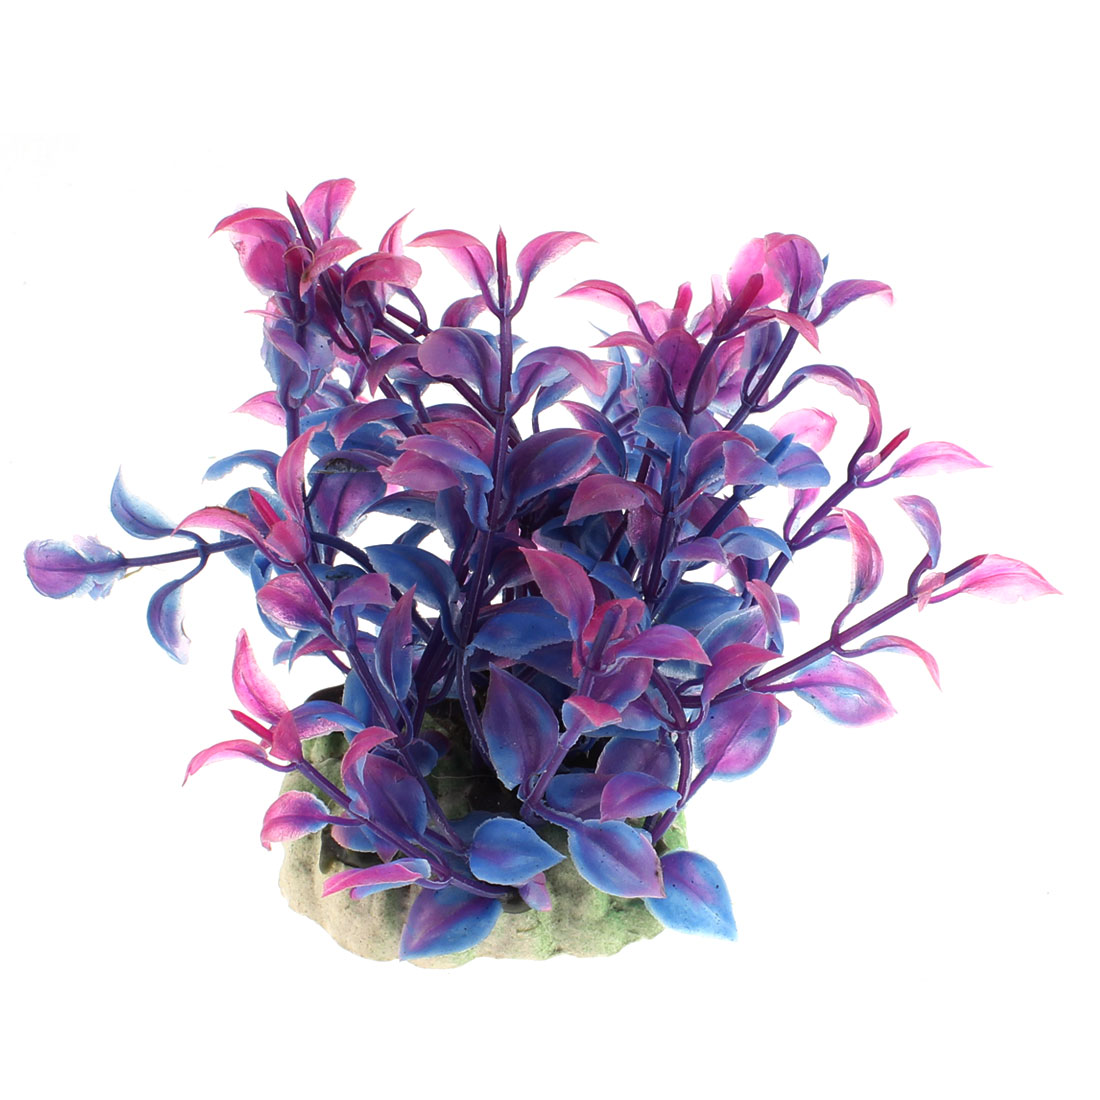 Aquarium Plastic Manmade Aquatic Plant Ornament Blue Purple